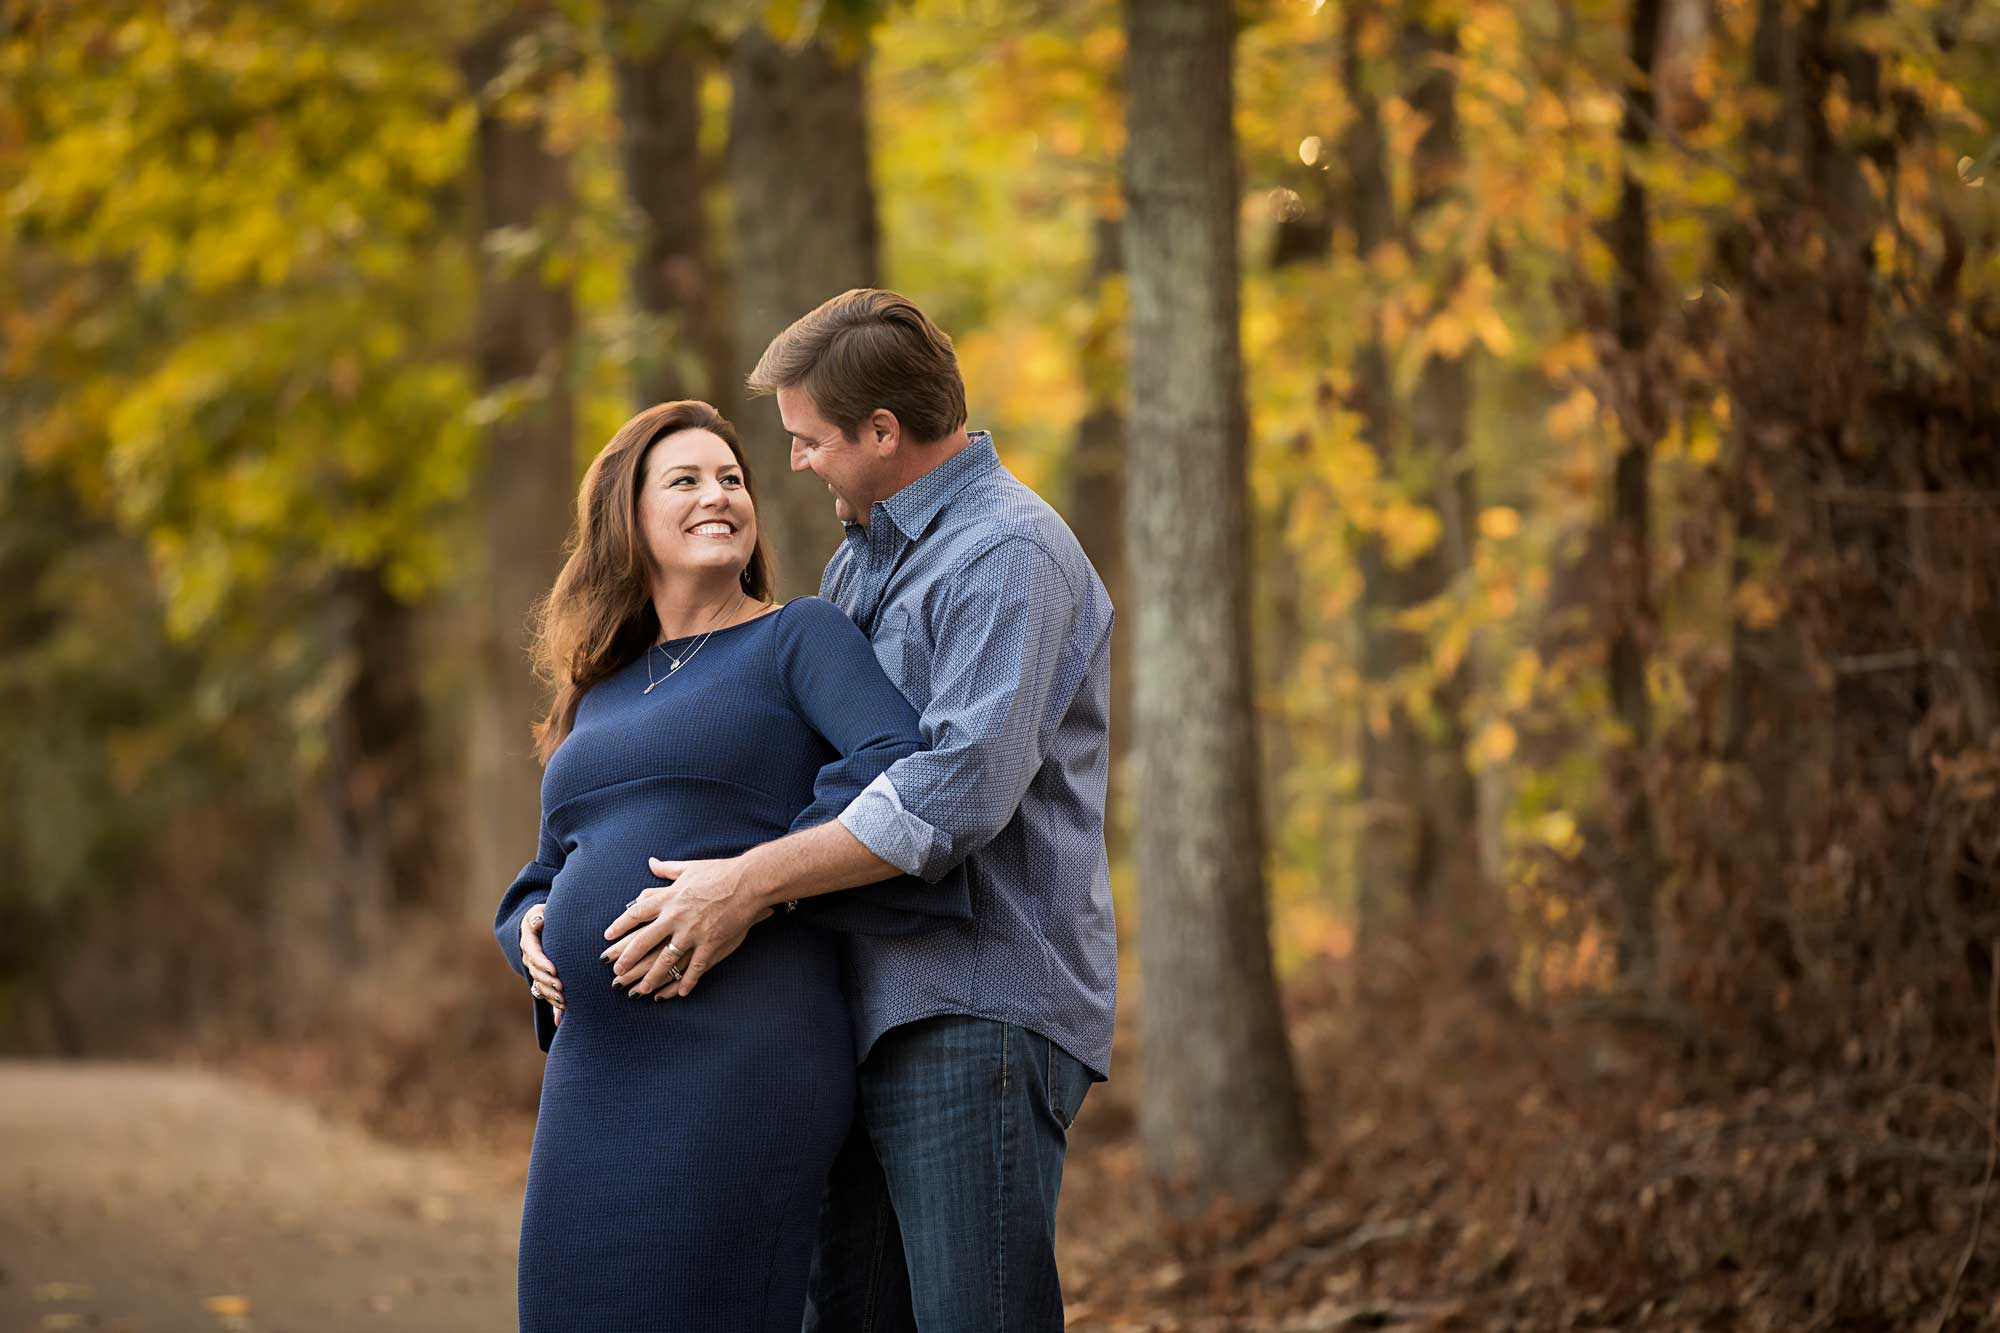 knoxville-maternity-photographer-couple-inpark.jpg